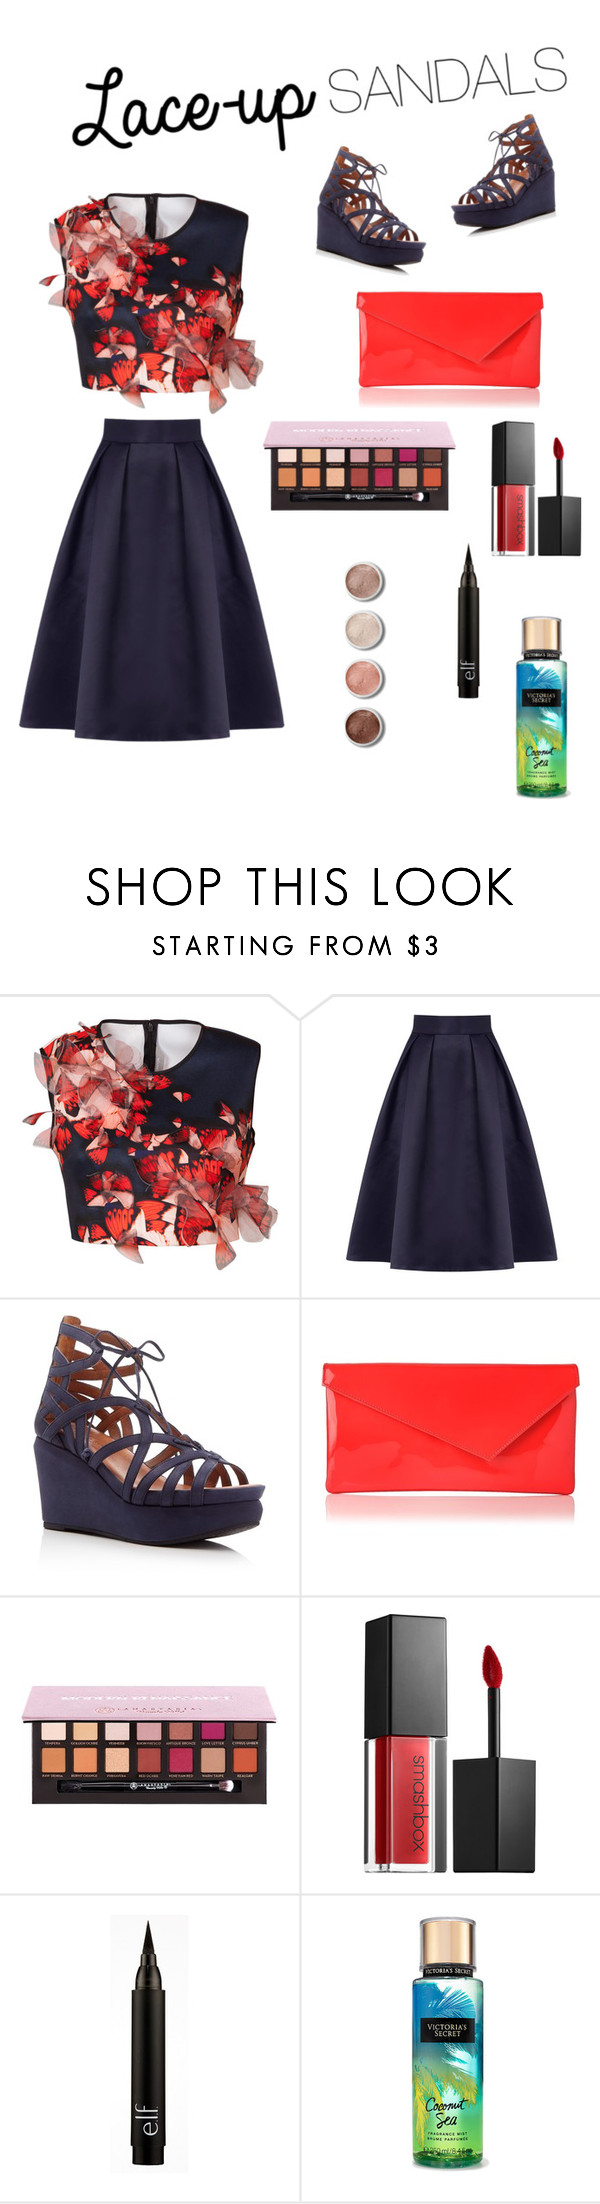 """Gemma - Style Insider Contest"" by kentigerna on Polyvore featuring moda, Clover Canyon, Coast, Gentle Souls, Anastasia Beverly Hills, Smashbox, Terre Mère, contestentry, laceupsandals e PVStyleInsiderContest"